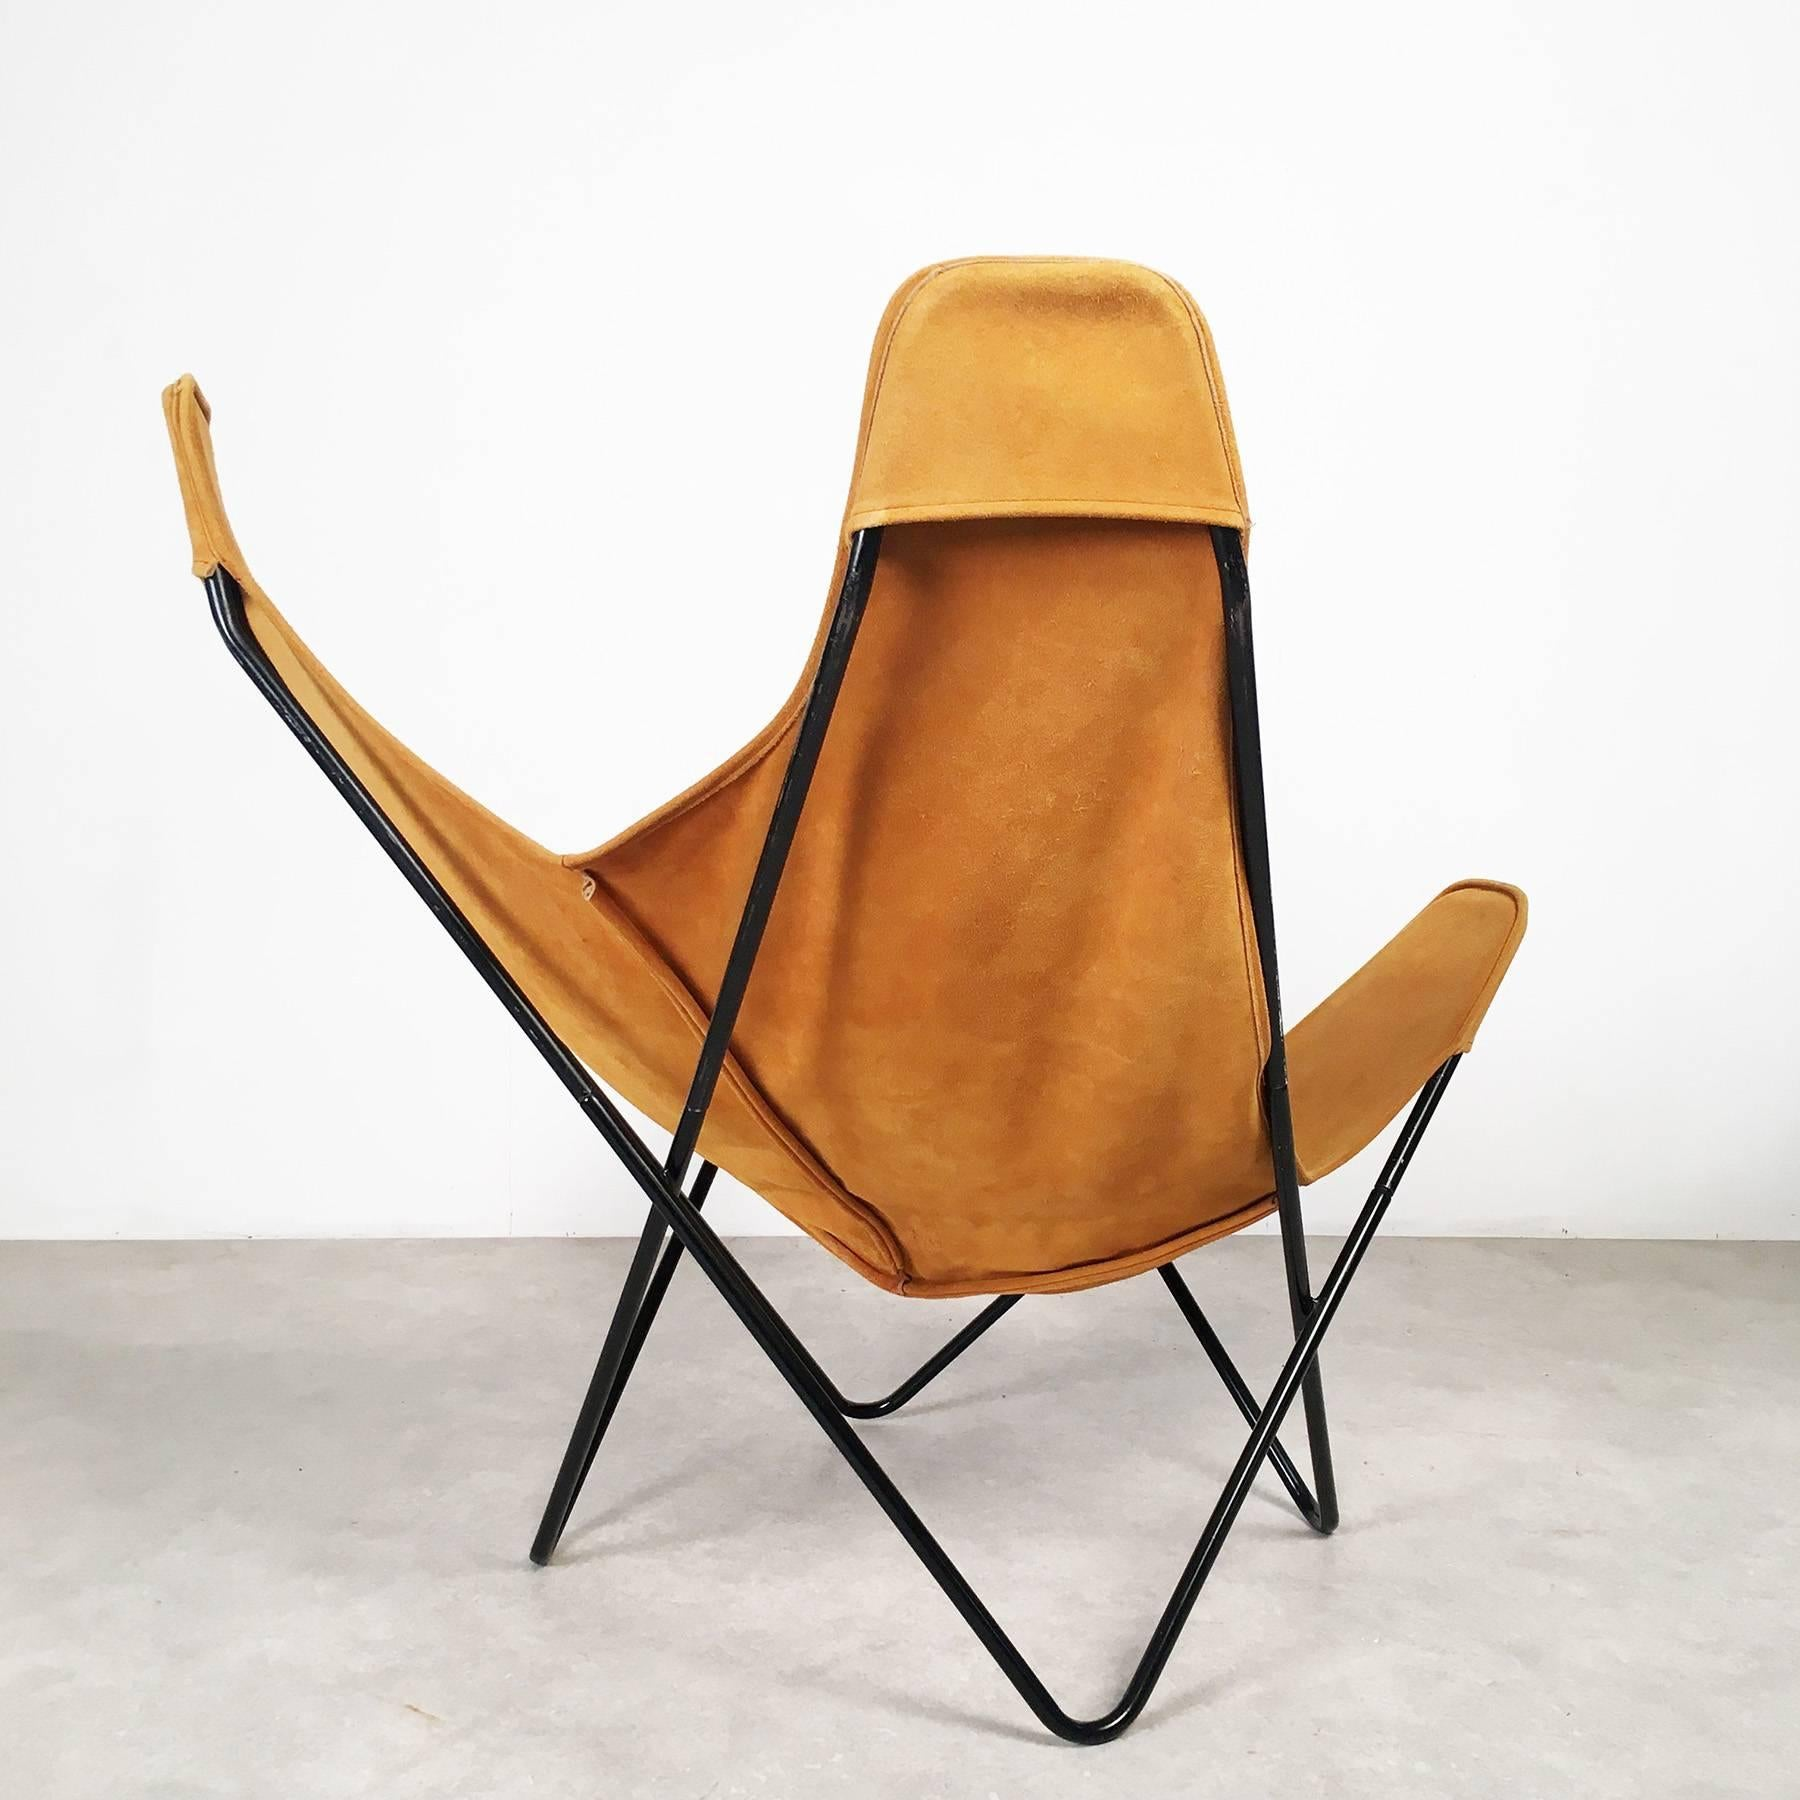 Captivating Butterfly Chair By Jorge Ferrari Hardoy For Knoll For Sale At 1stdibs